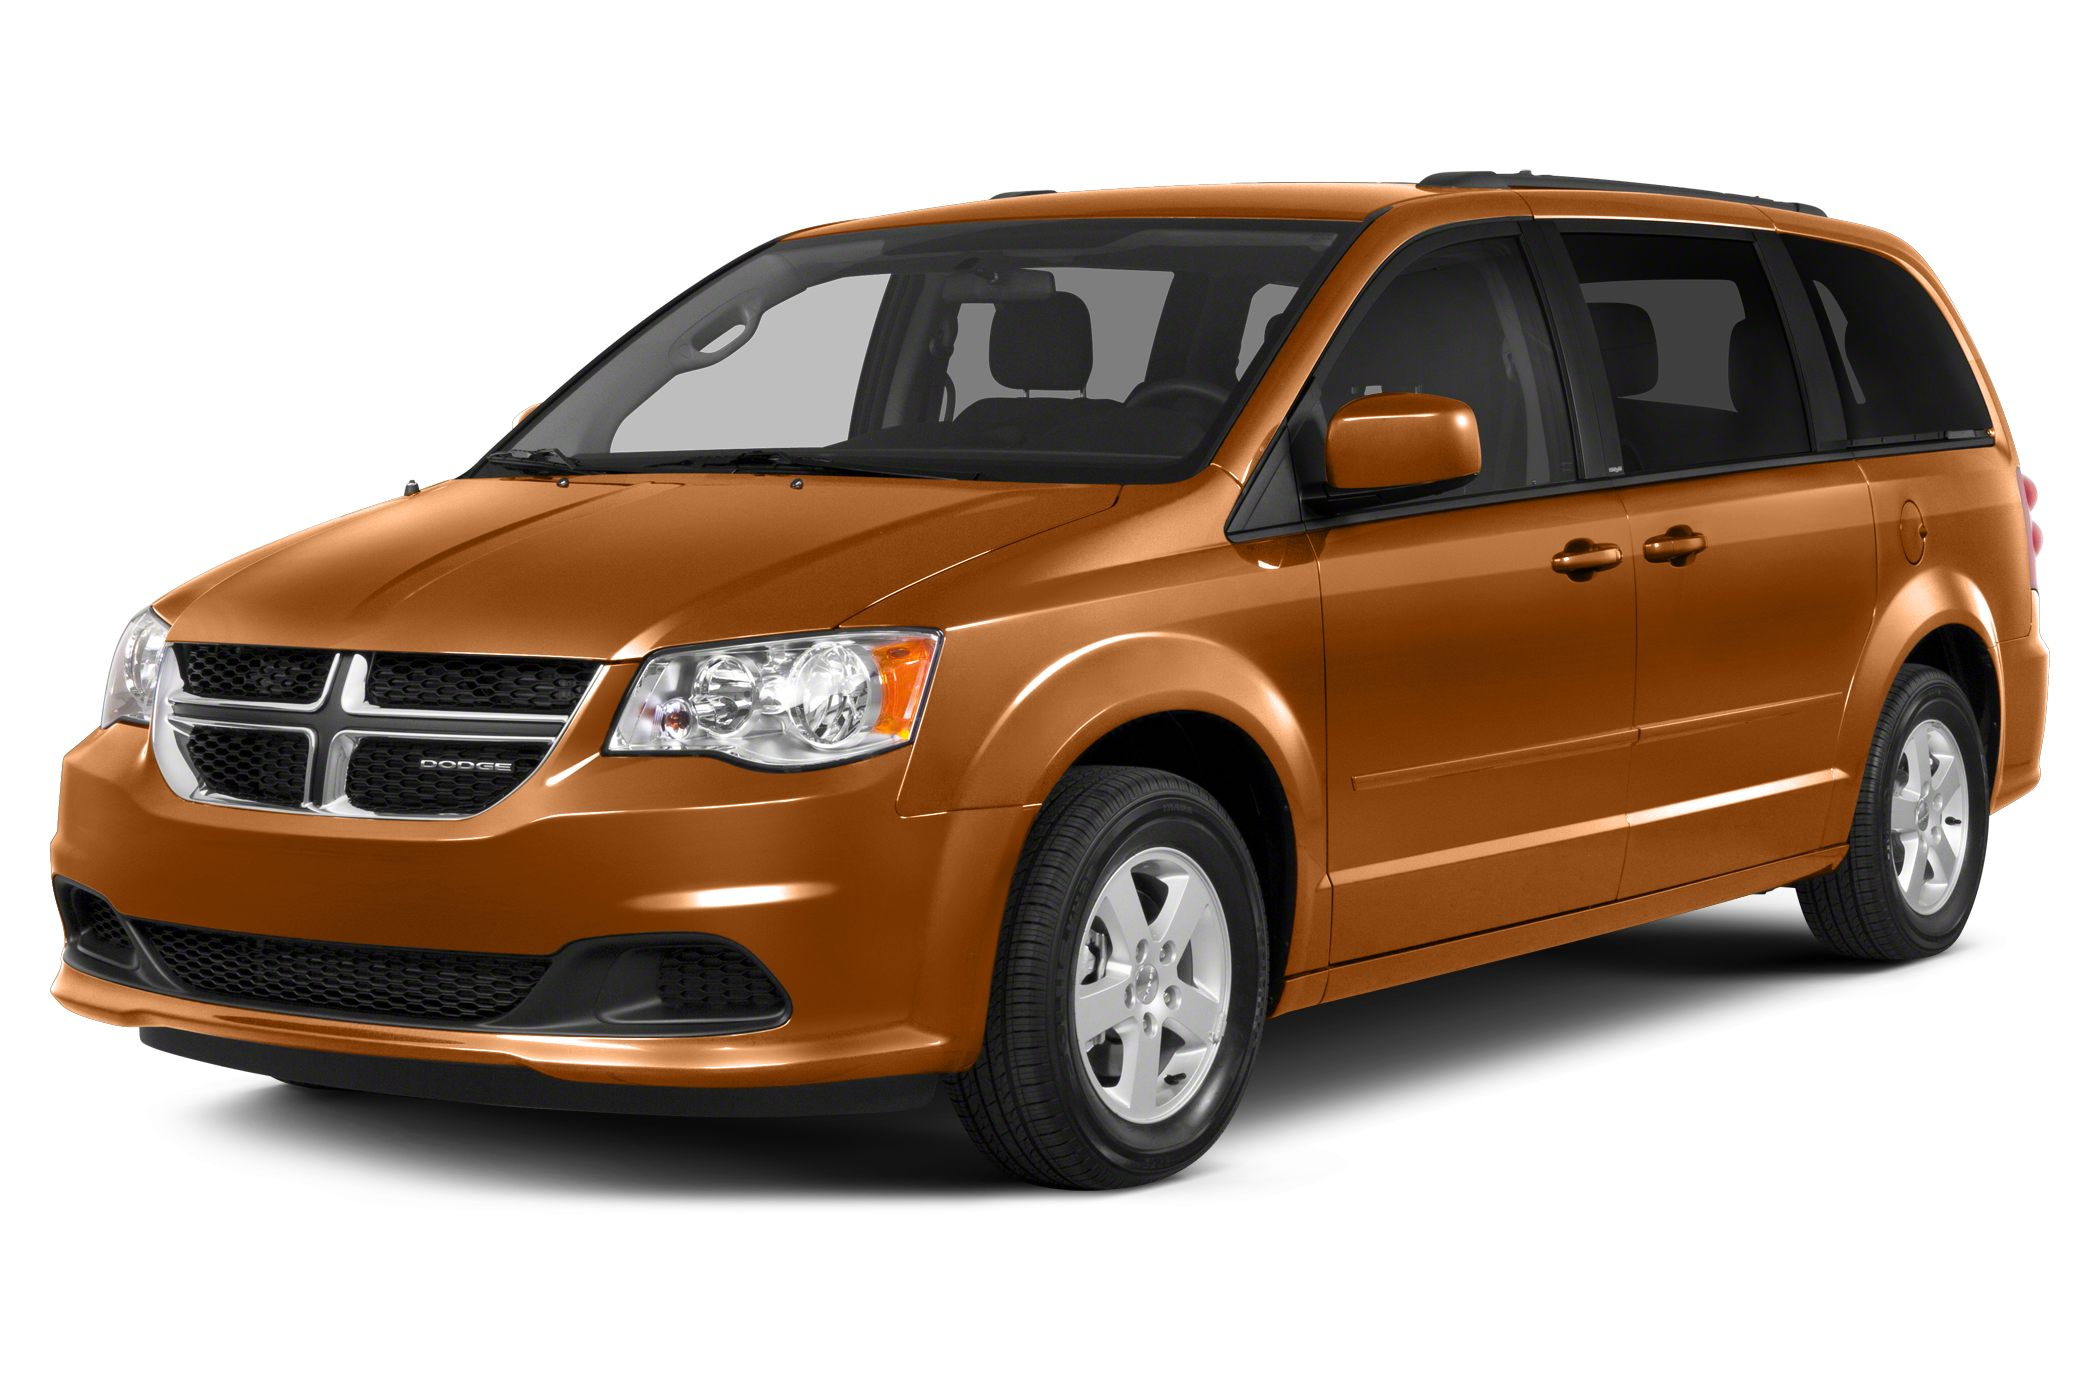 2012 Dodge Grand Caravan Safety Recalls